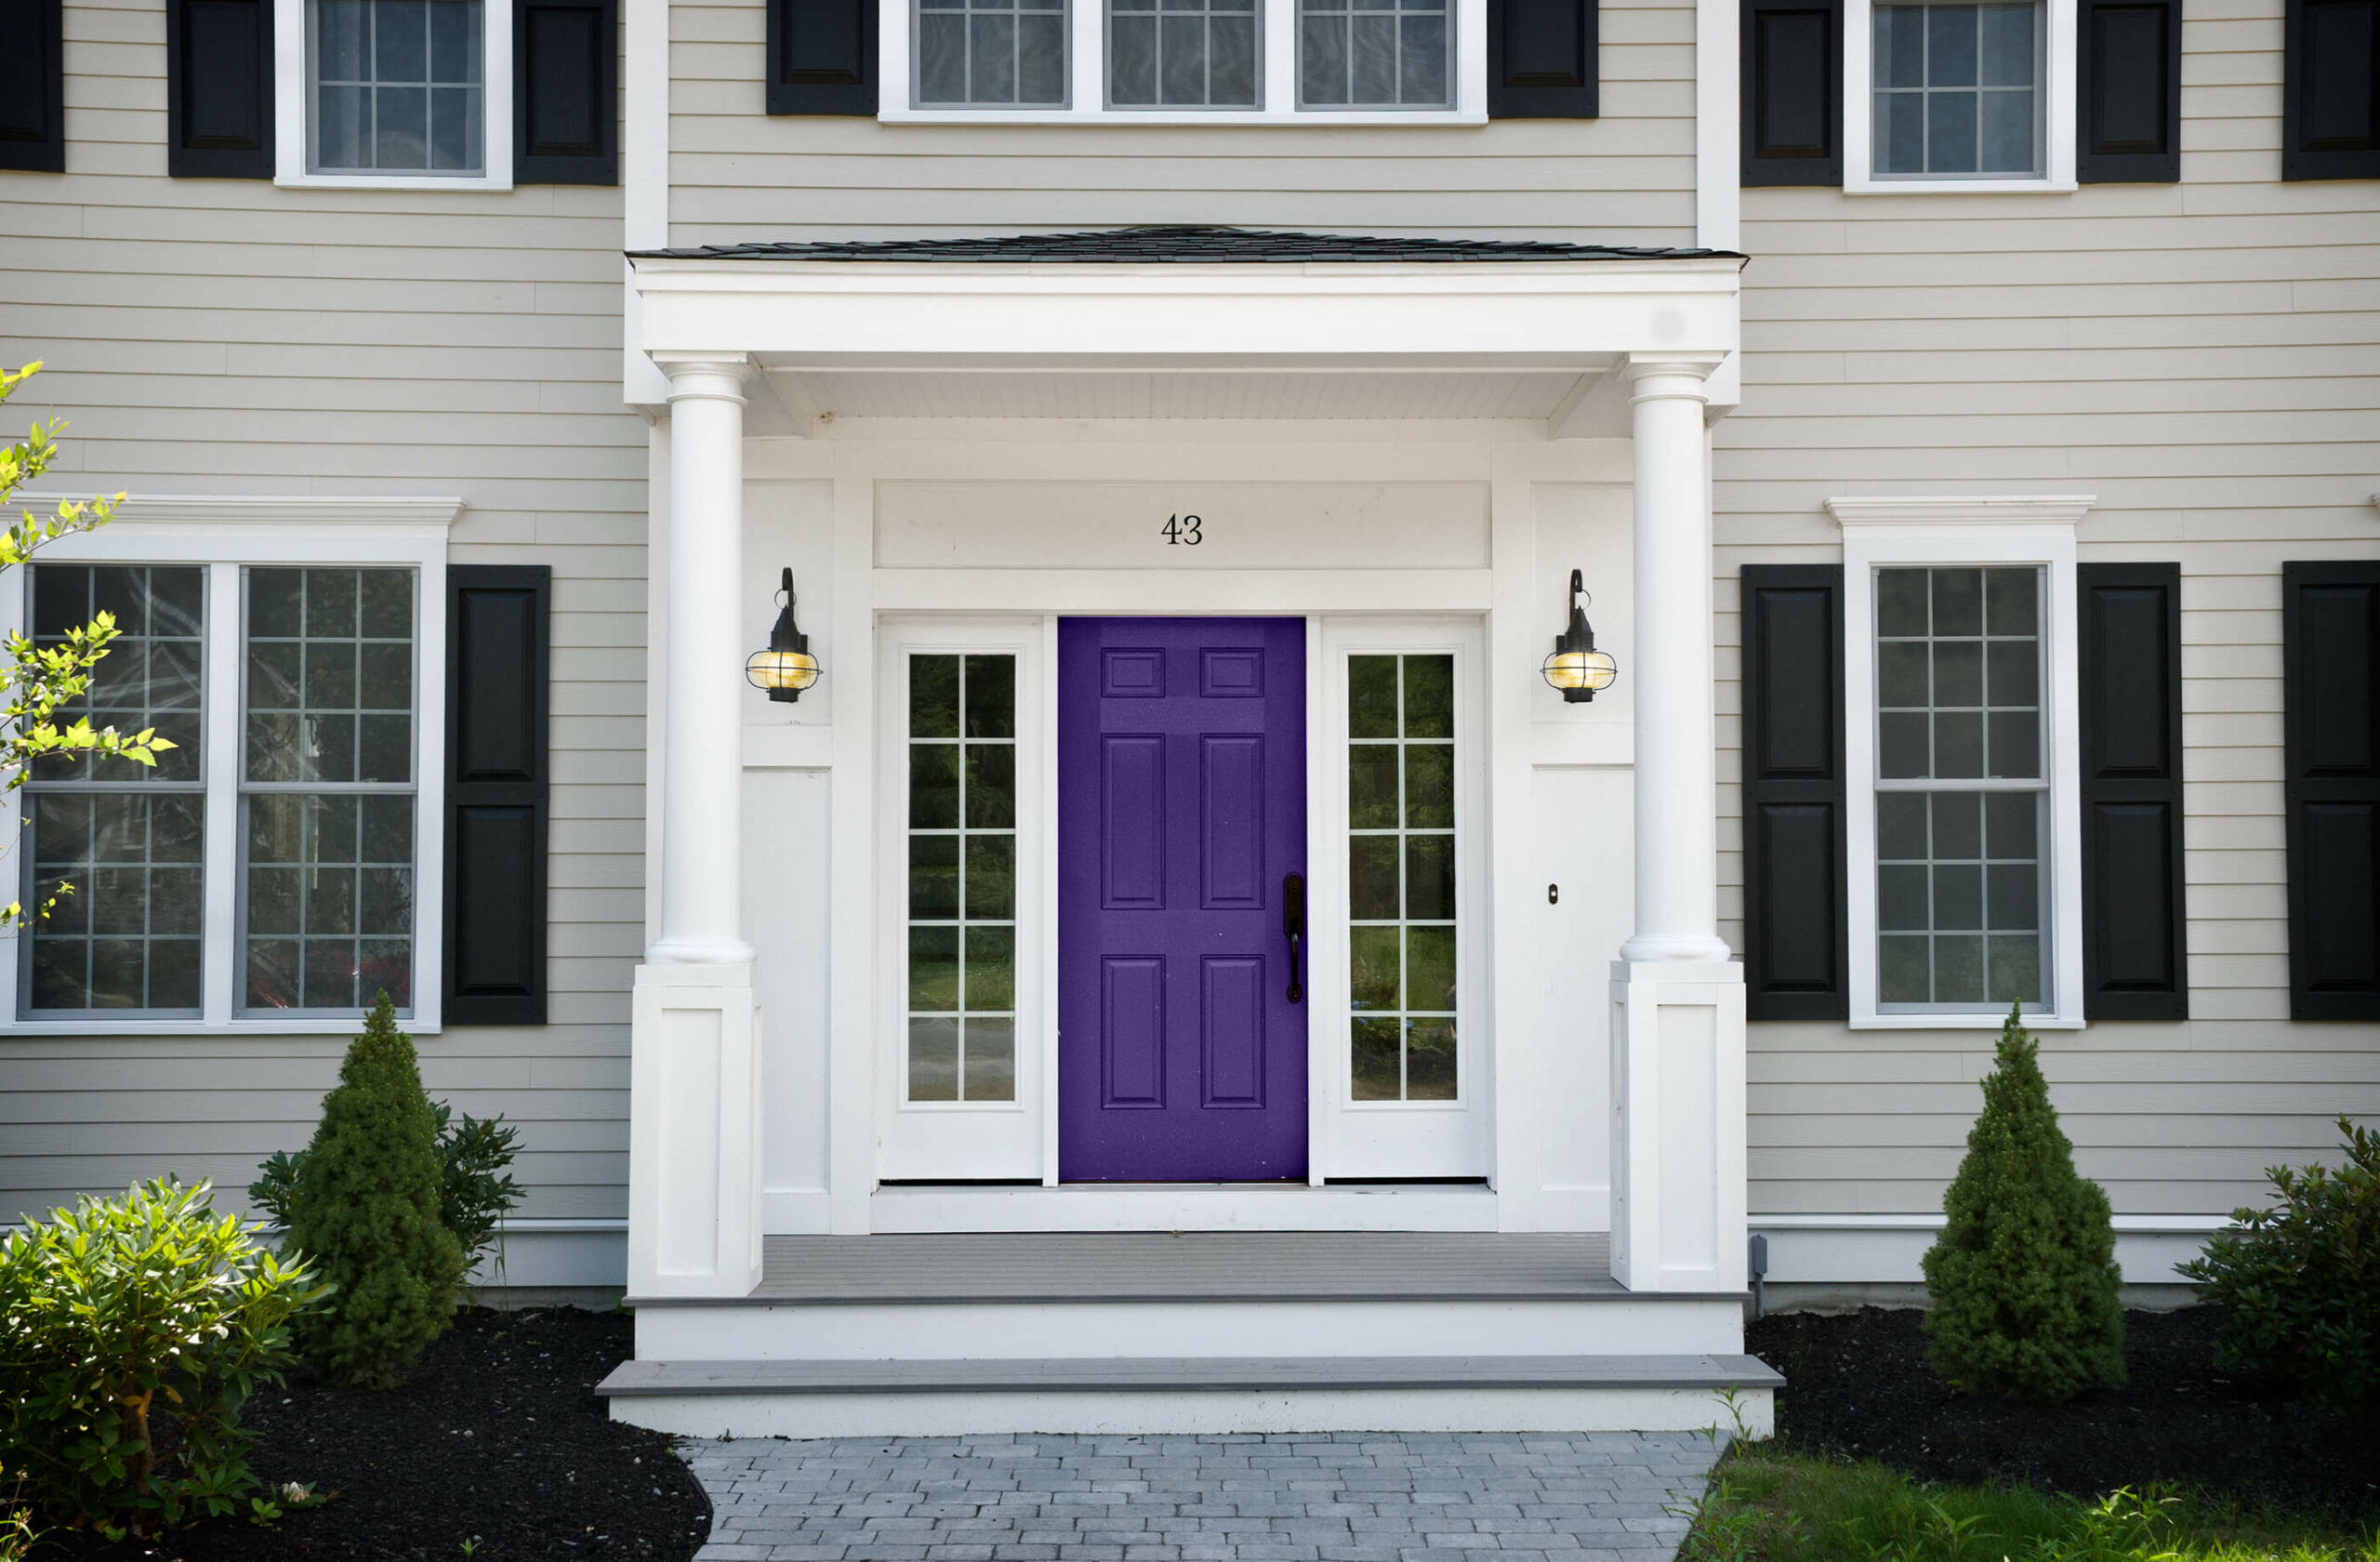 Photo of Masonite 6 panel purple door